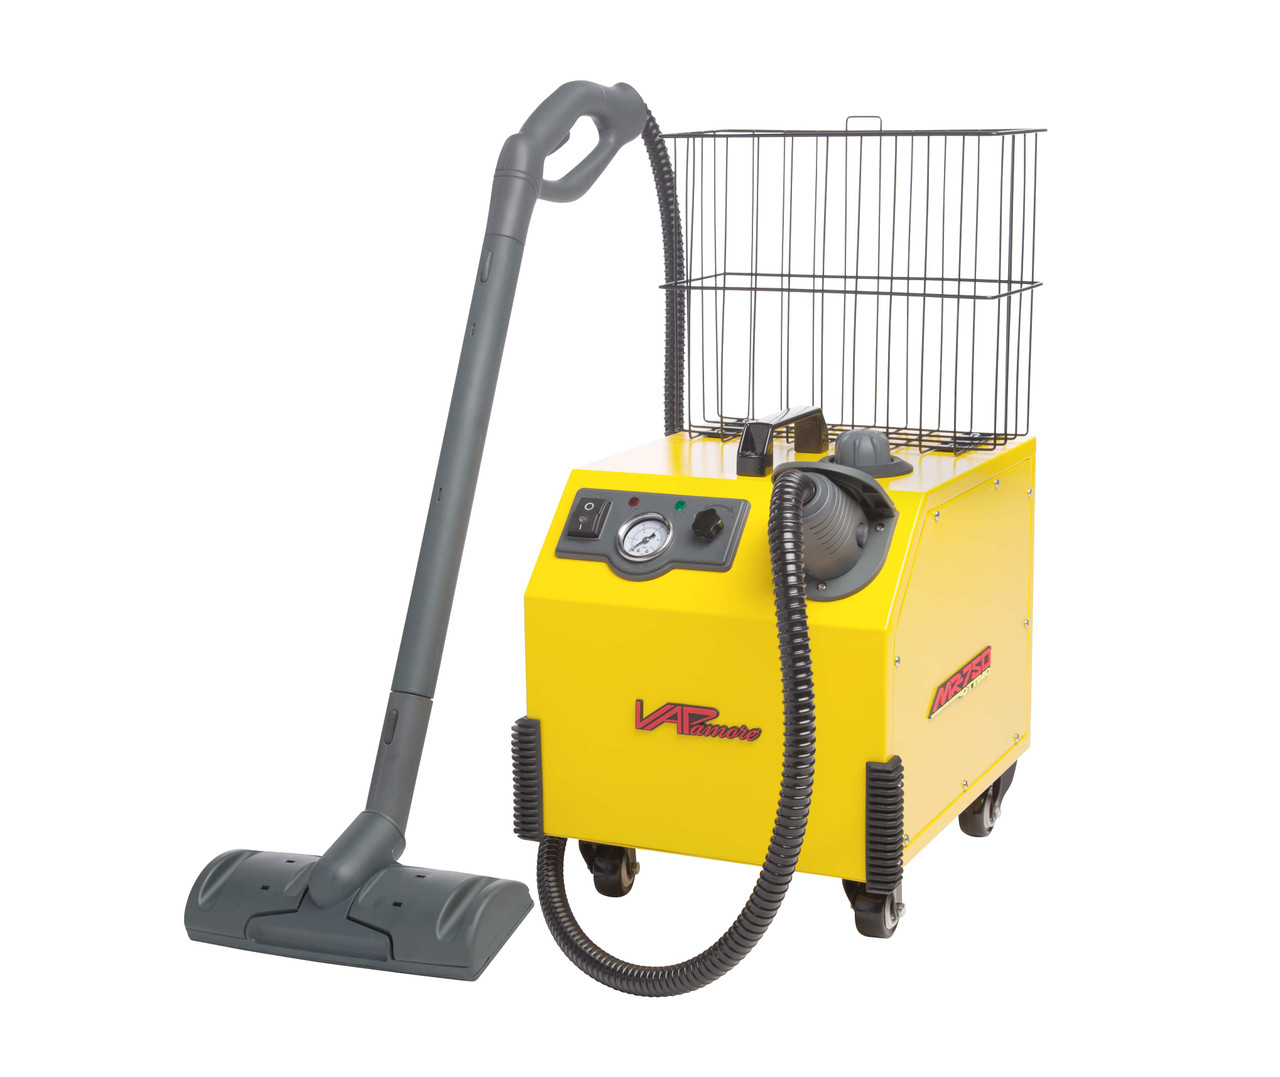 Vapamore Heavy-Duty Steam Cleaning System MR-750